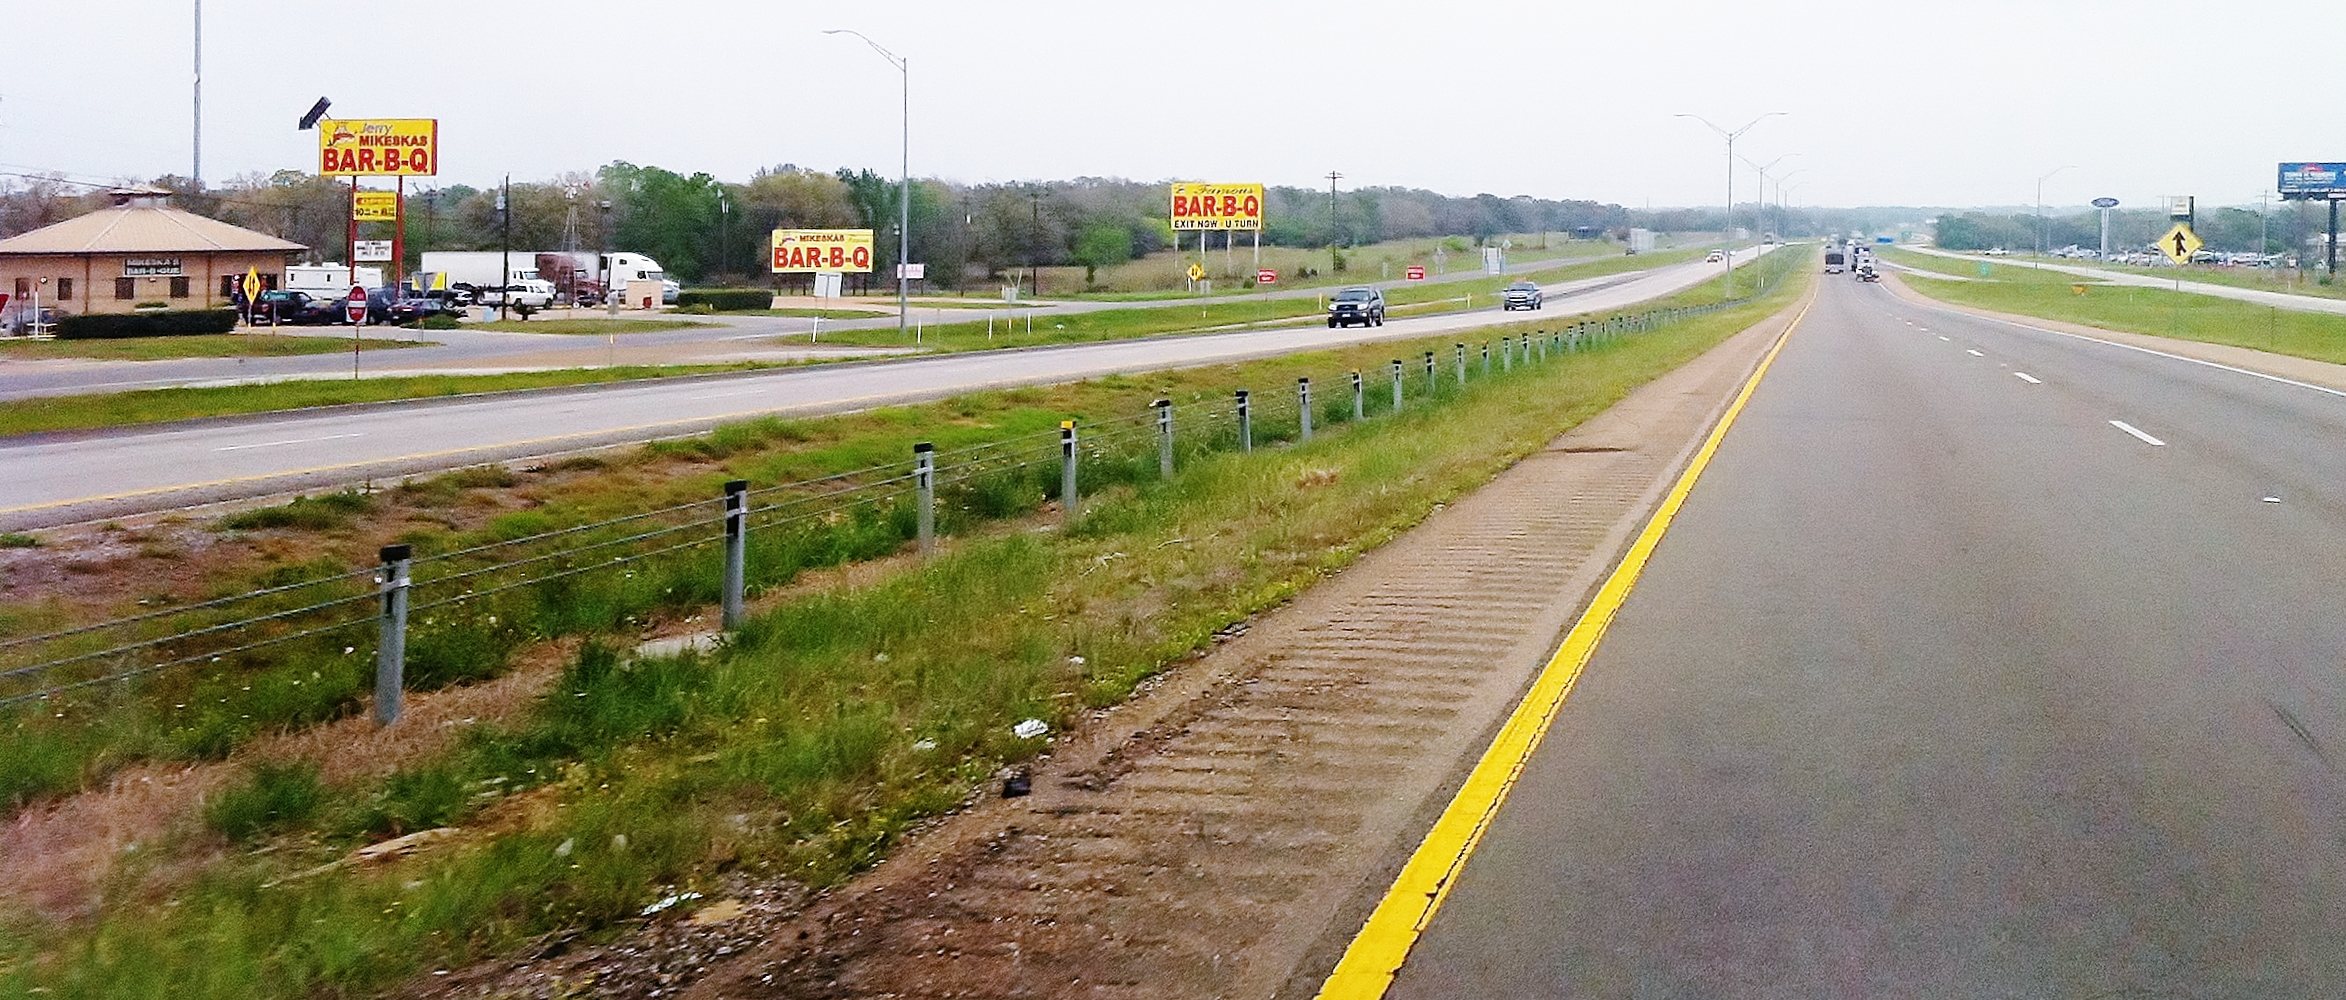 Cable median barriers